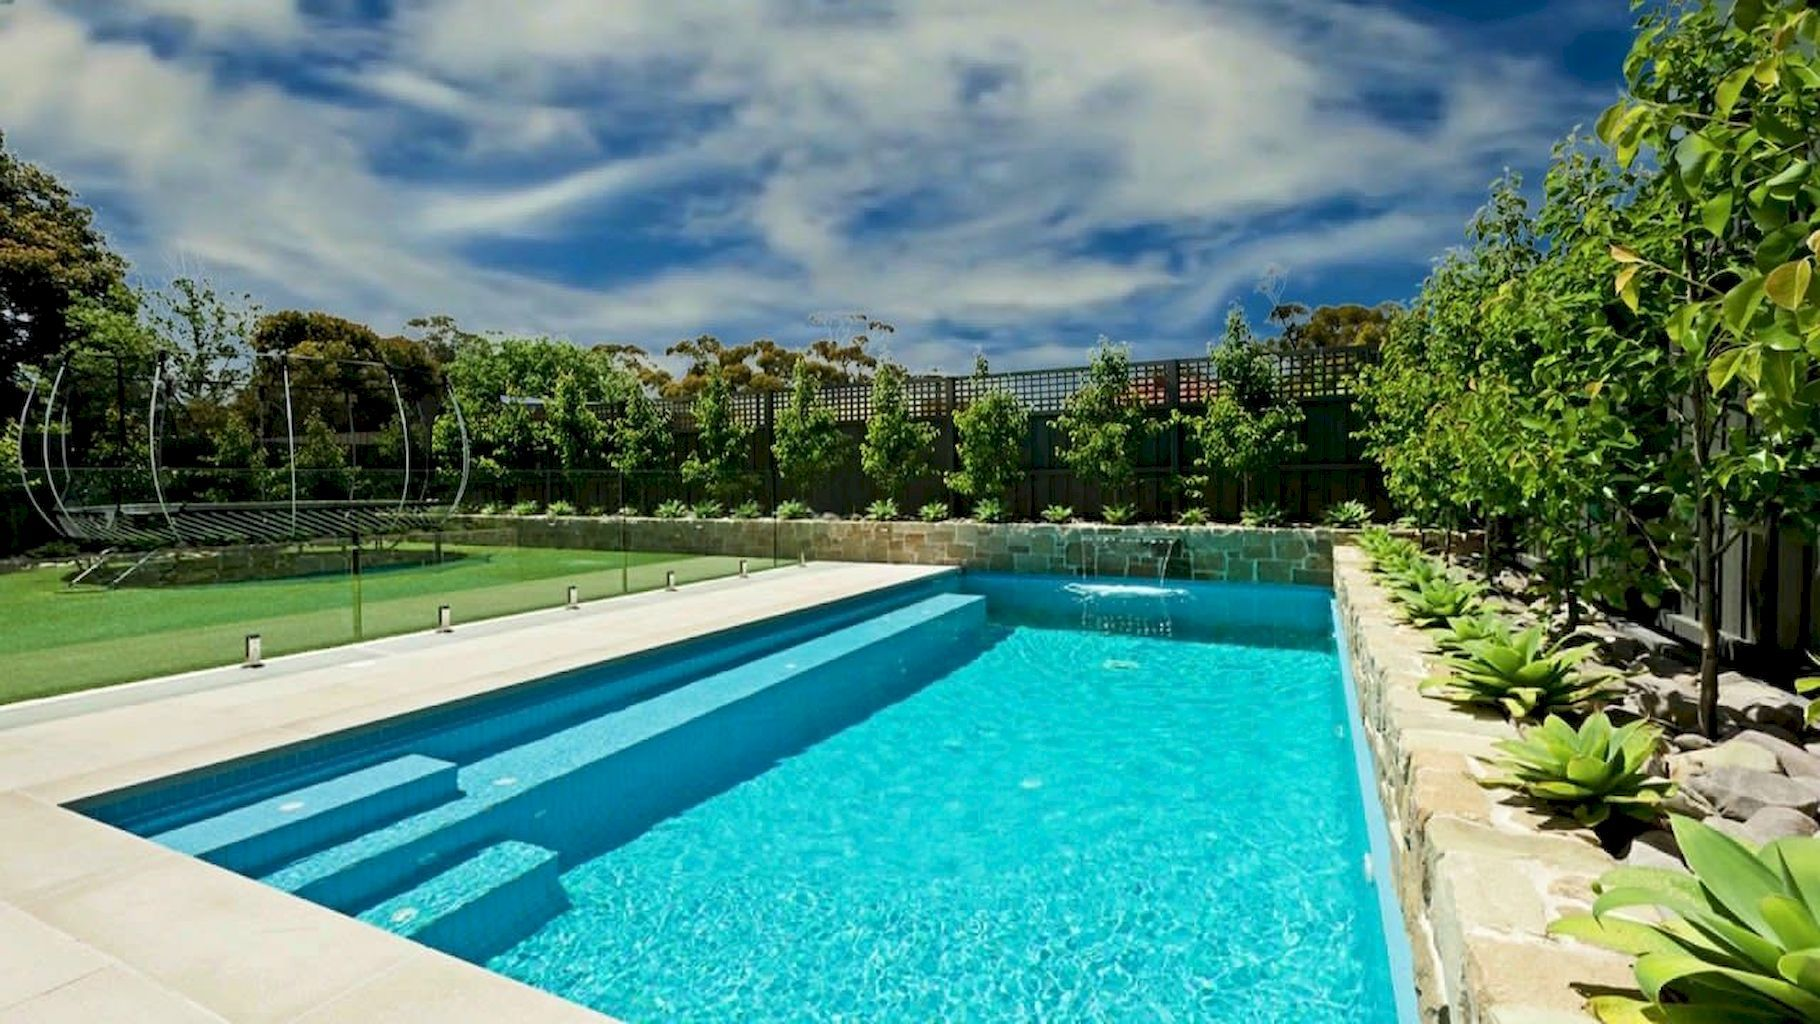 Attractive Beautiful Swimming Pool Trends For Your Home Swimming Pool Designs Rectangular Pool Swimming Pool Trends